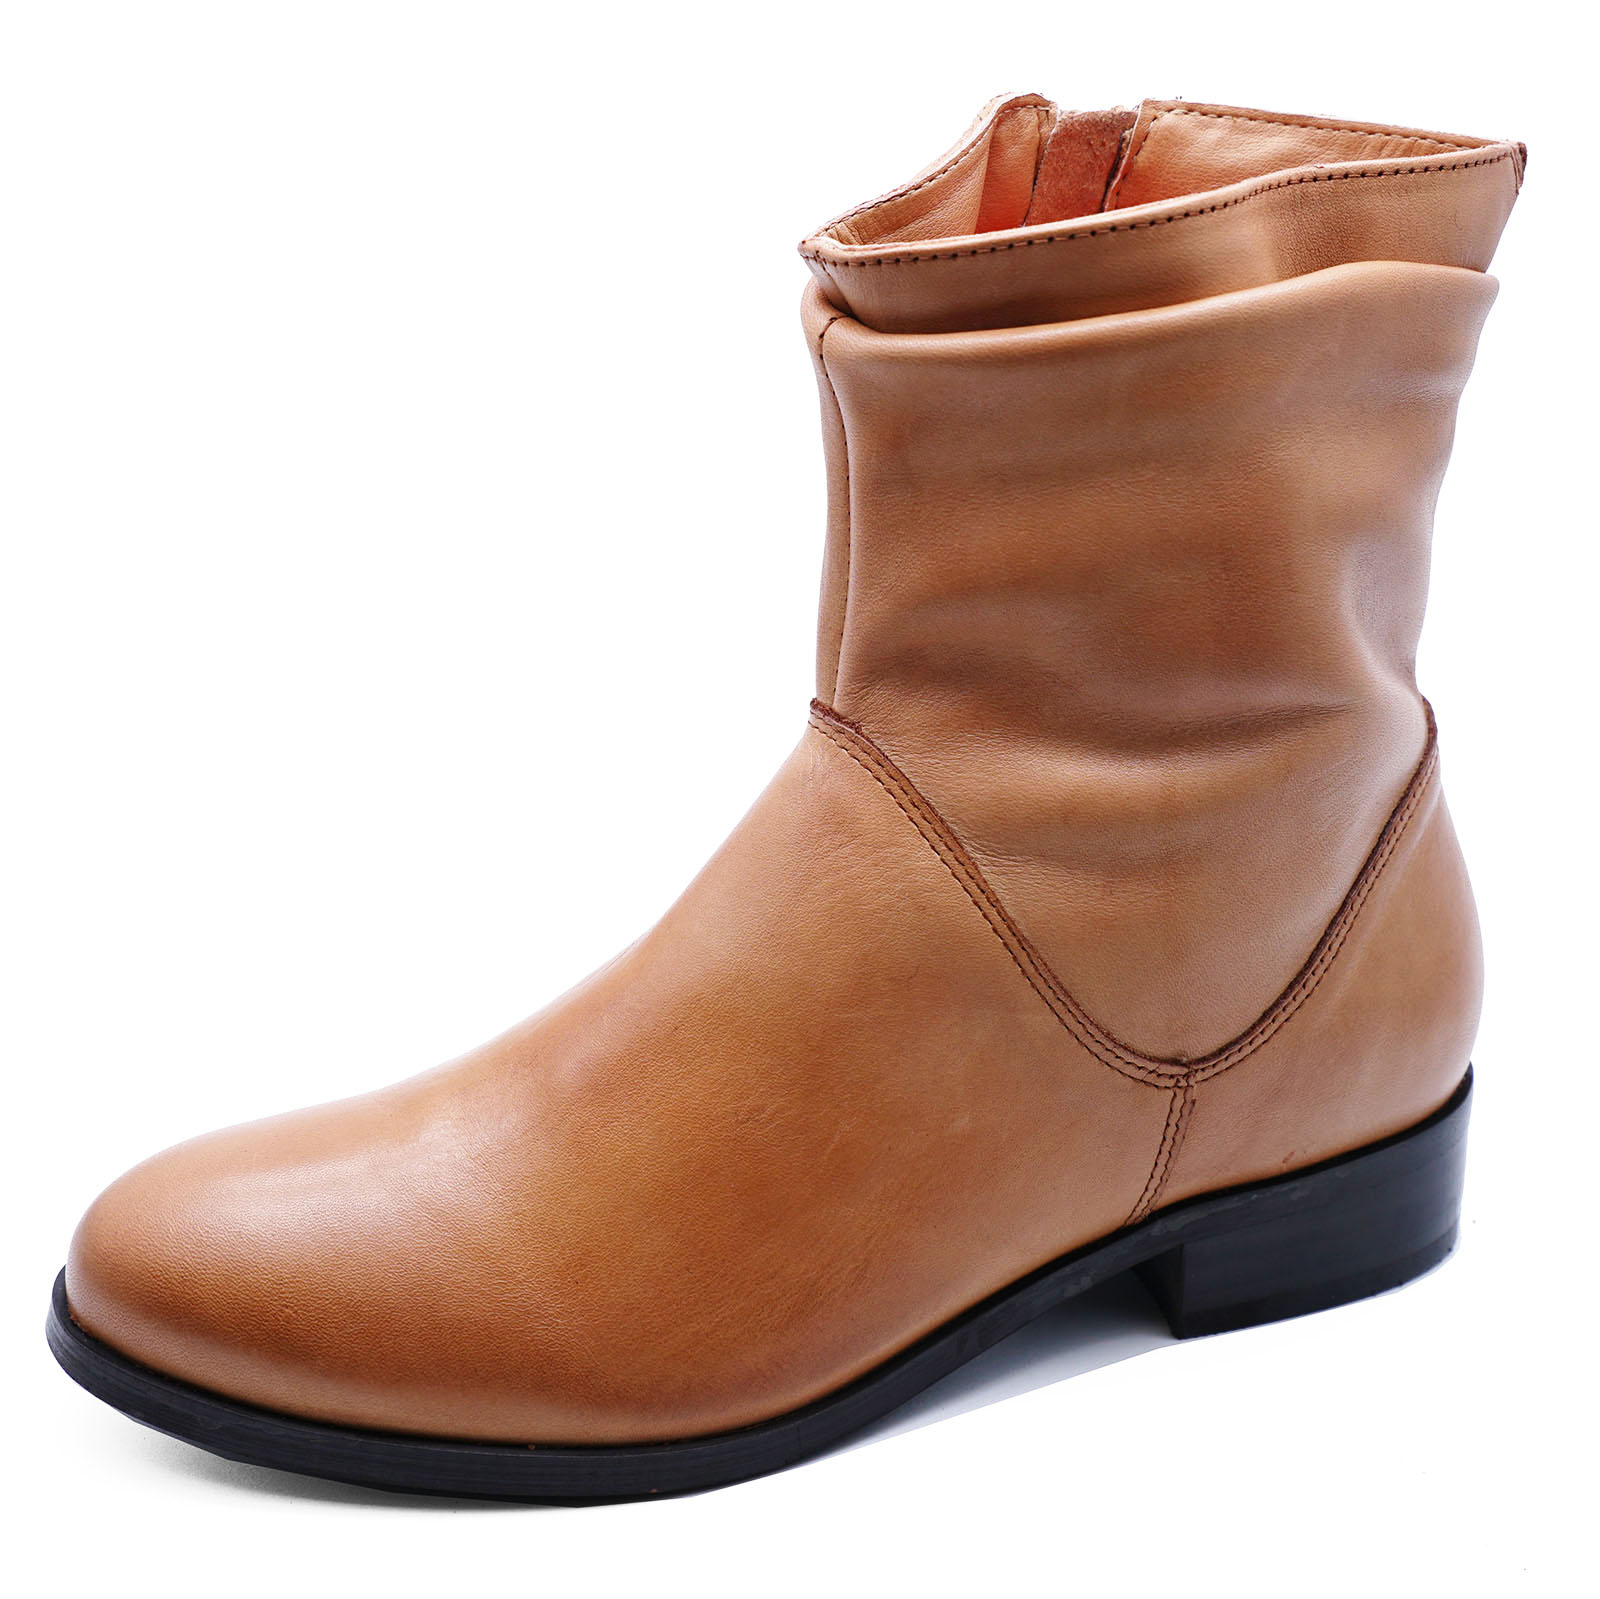 LADIES-FLAT-GENUINE-LEATHER-TAN-ZIP-UP-ANKLE-CALF-BOOTS-COMFY-SHOES-SIZES-2-9 thumbnail 21